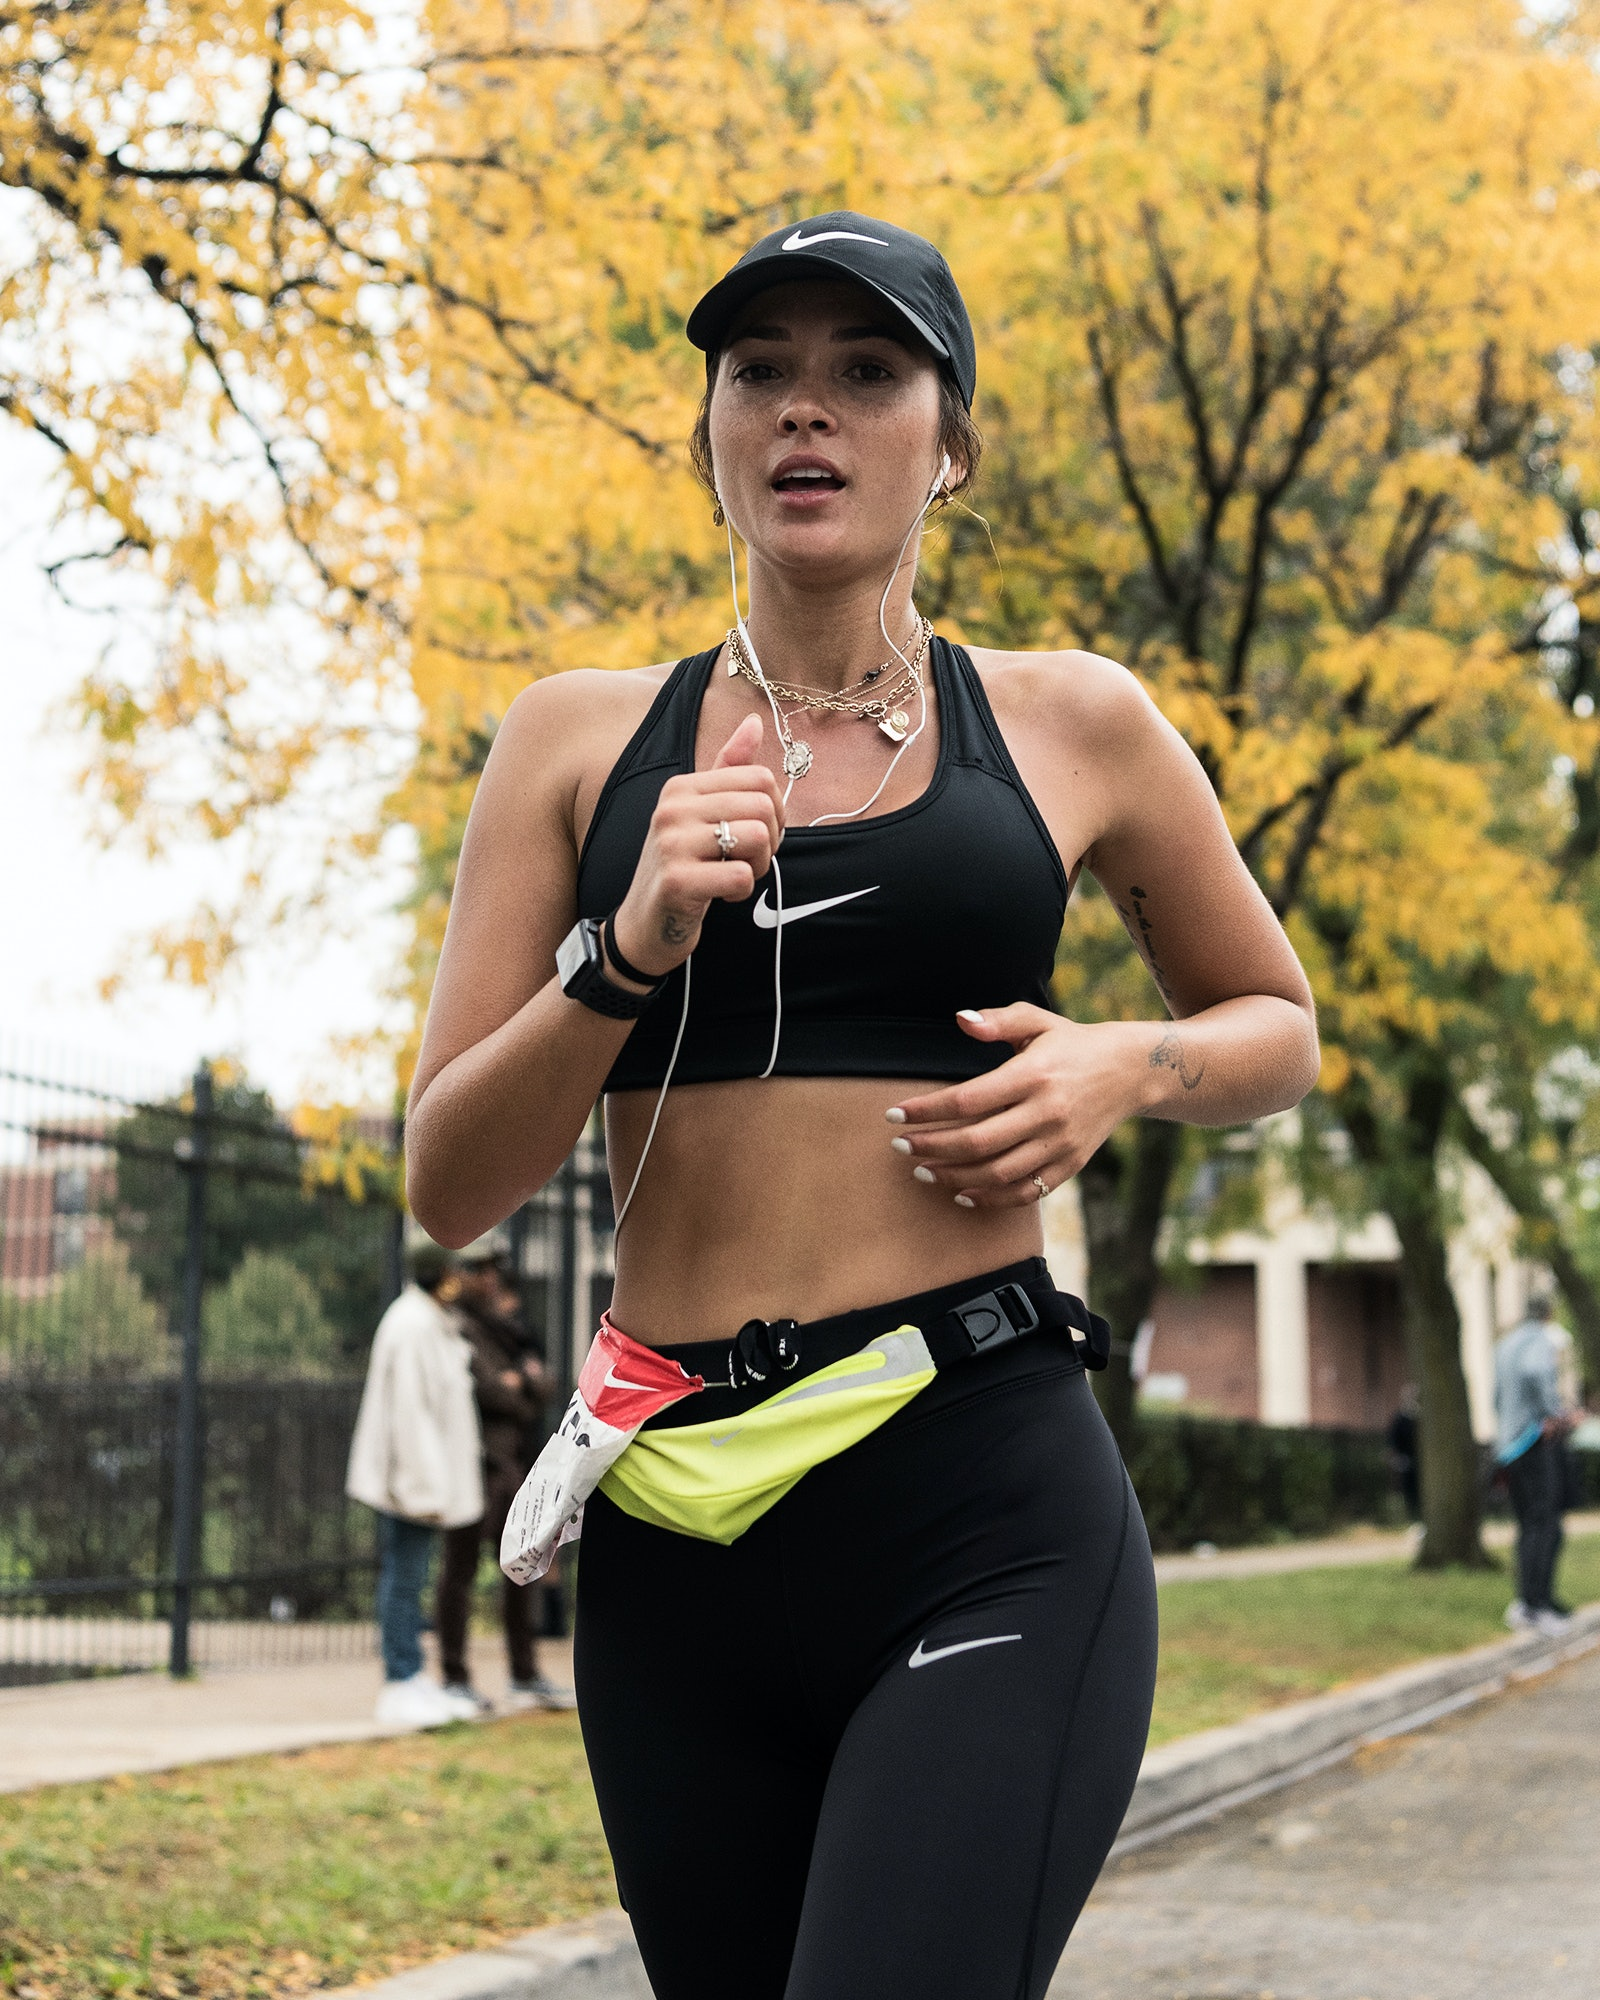 postre voltereta Leche  21 First-Time Marathoners Share Their Tips For Becoming A Better Runner